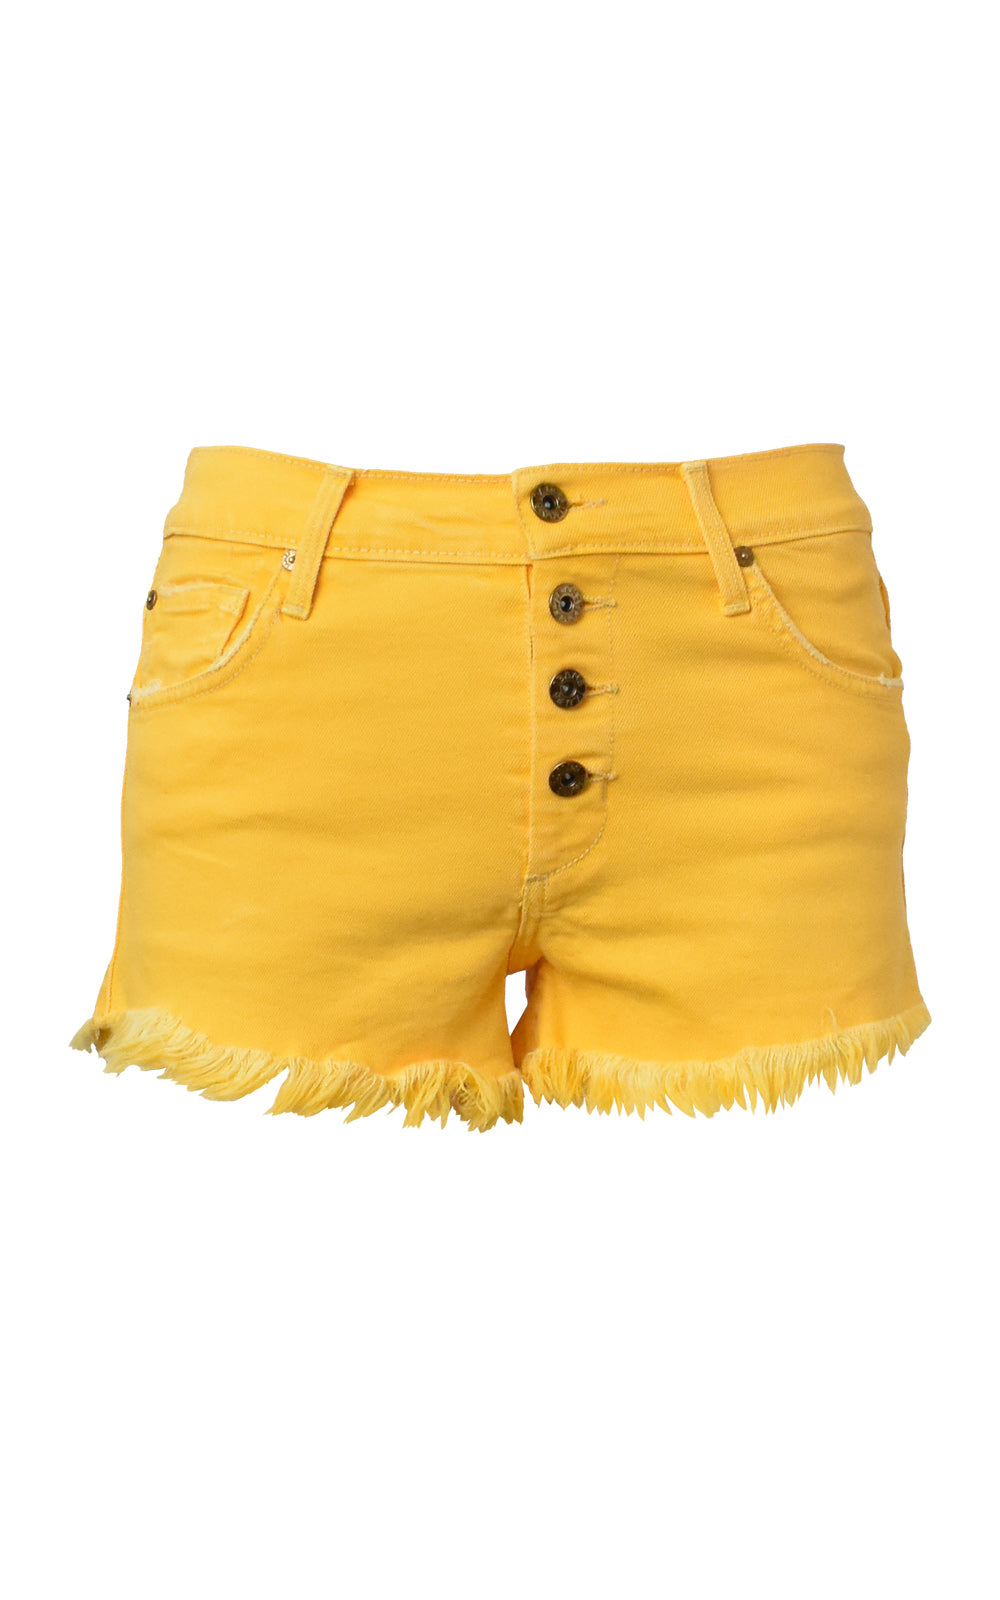 James Jeans Lulu Denim Cutoff Shorts Taffy Yellow